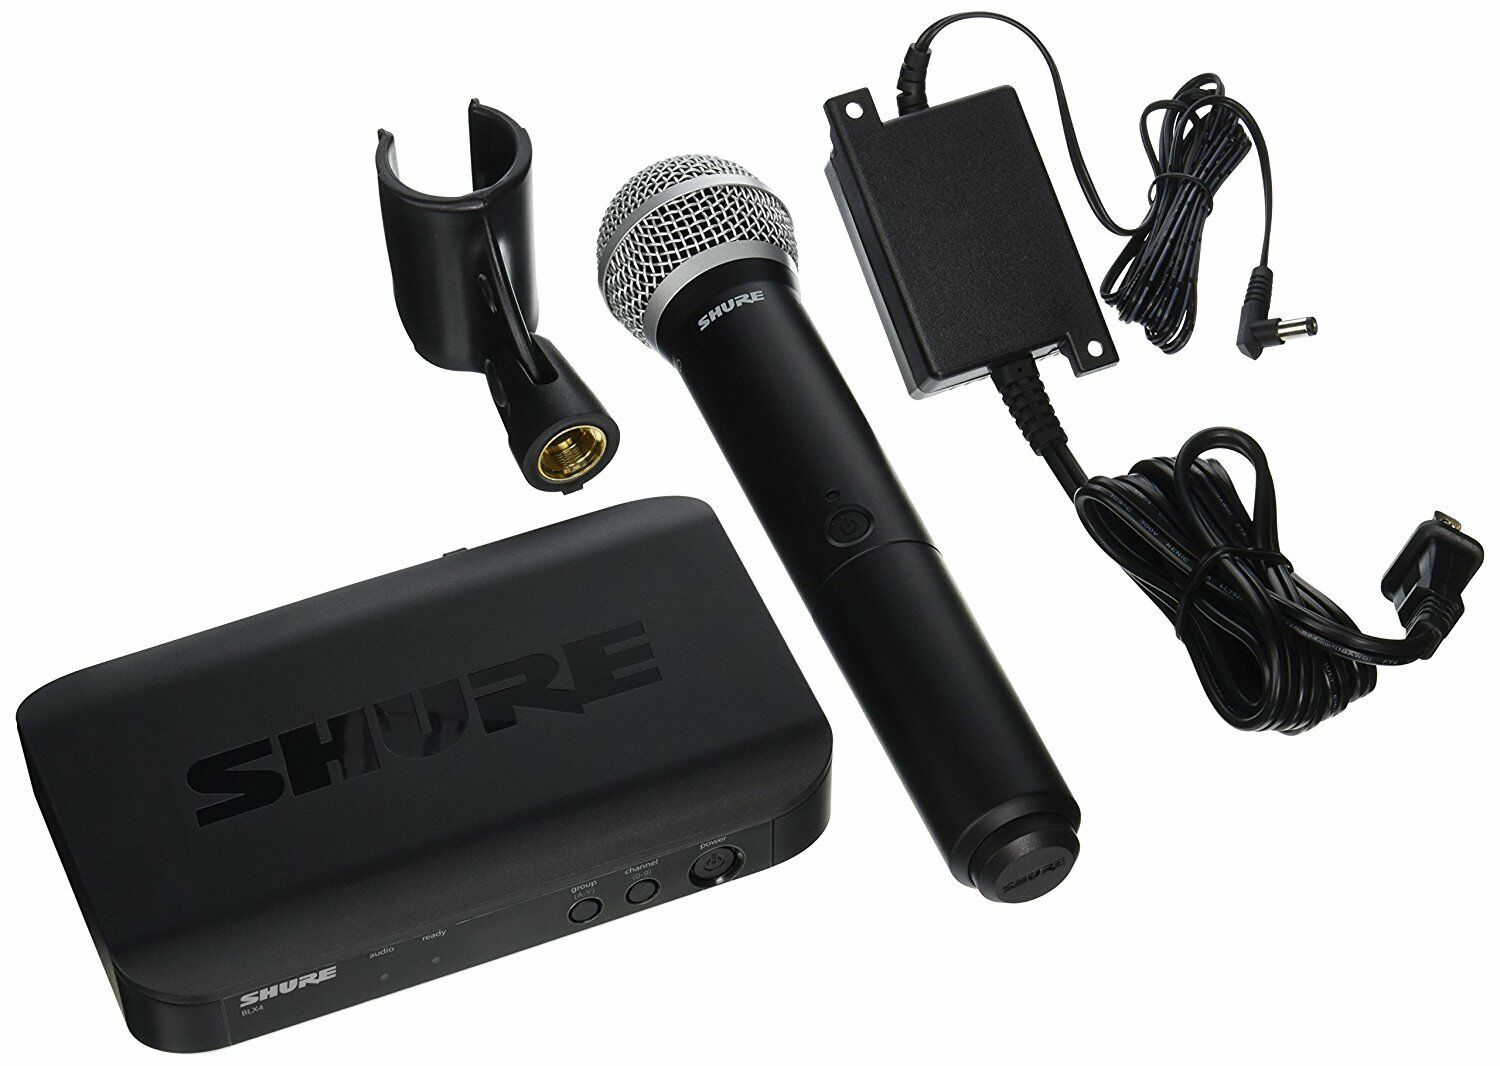 NEW Shure BLX24 PG58-H9 Wireless System & PG58 Mic H9  512 -542 MHz MICROPHONE